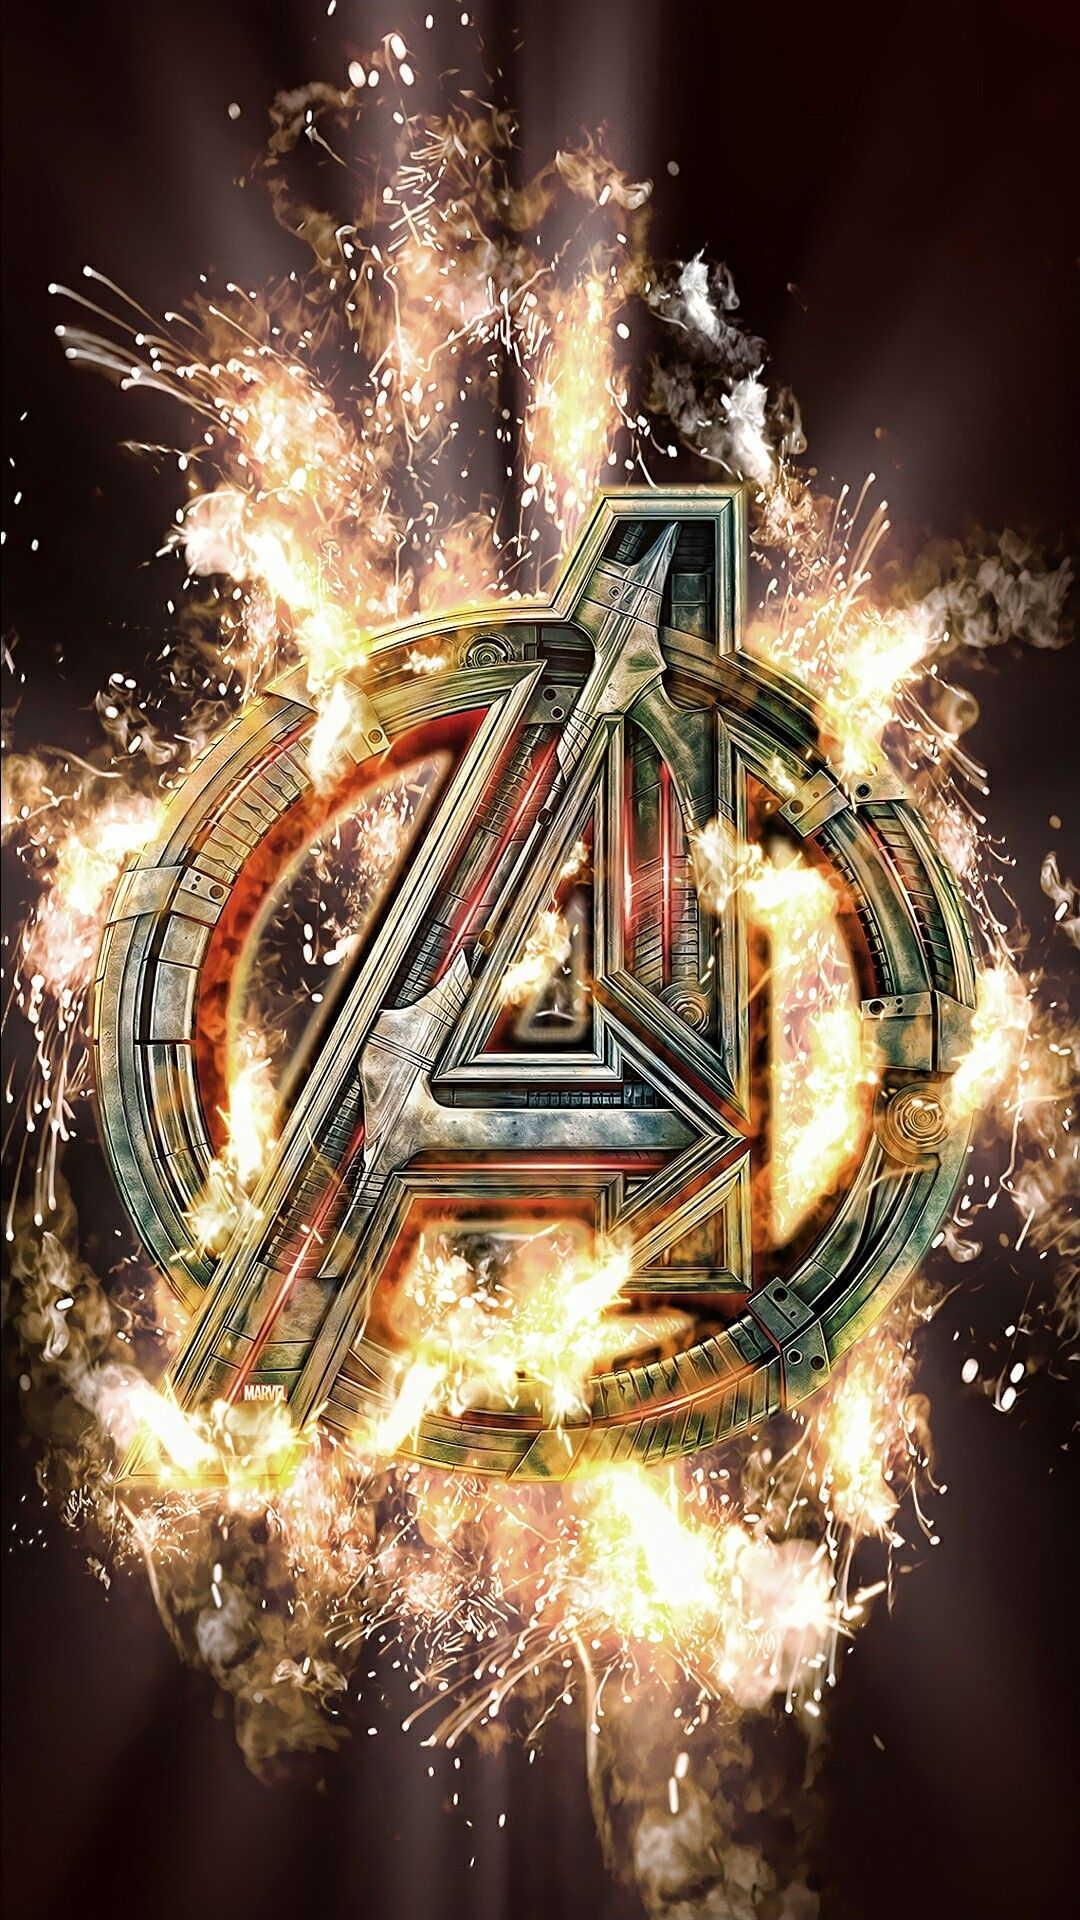 Avengers Wallpaper | Heroes & Villains (RANDOM) | Pinterest | Avengers wallpaper, Marvel ...